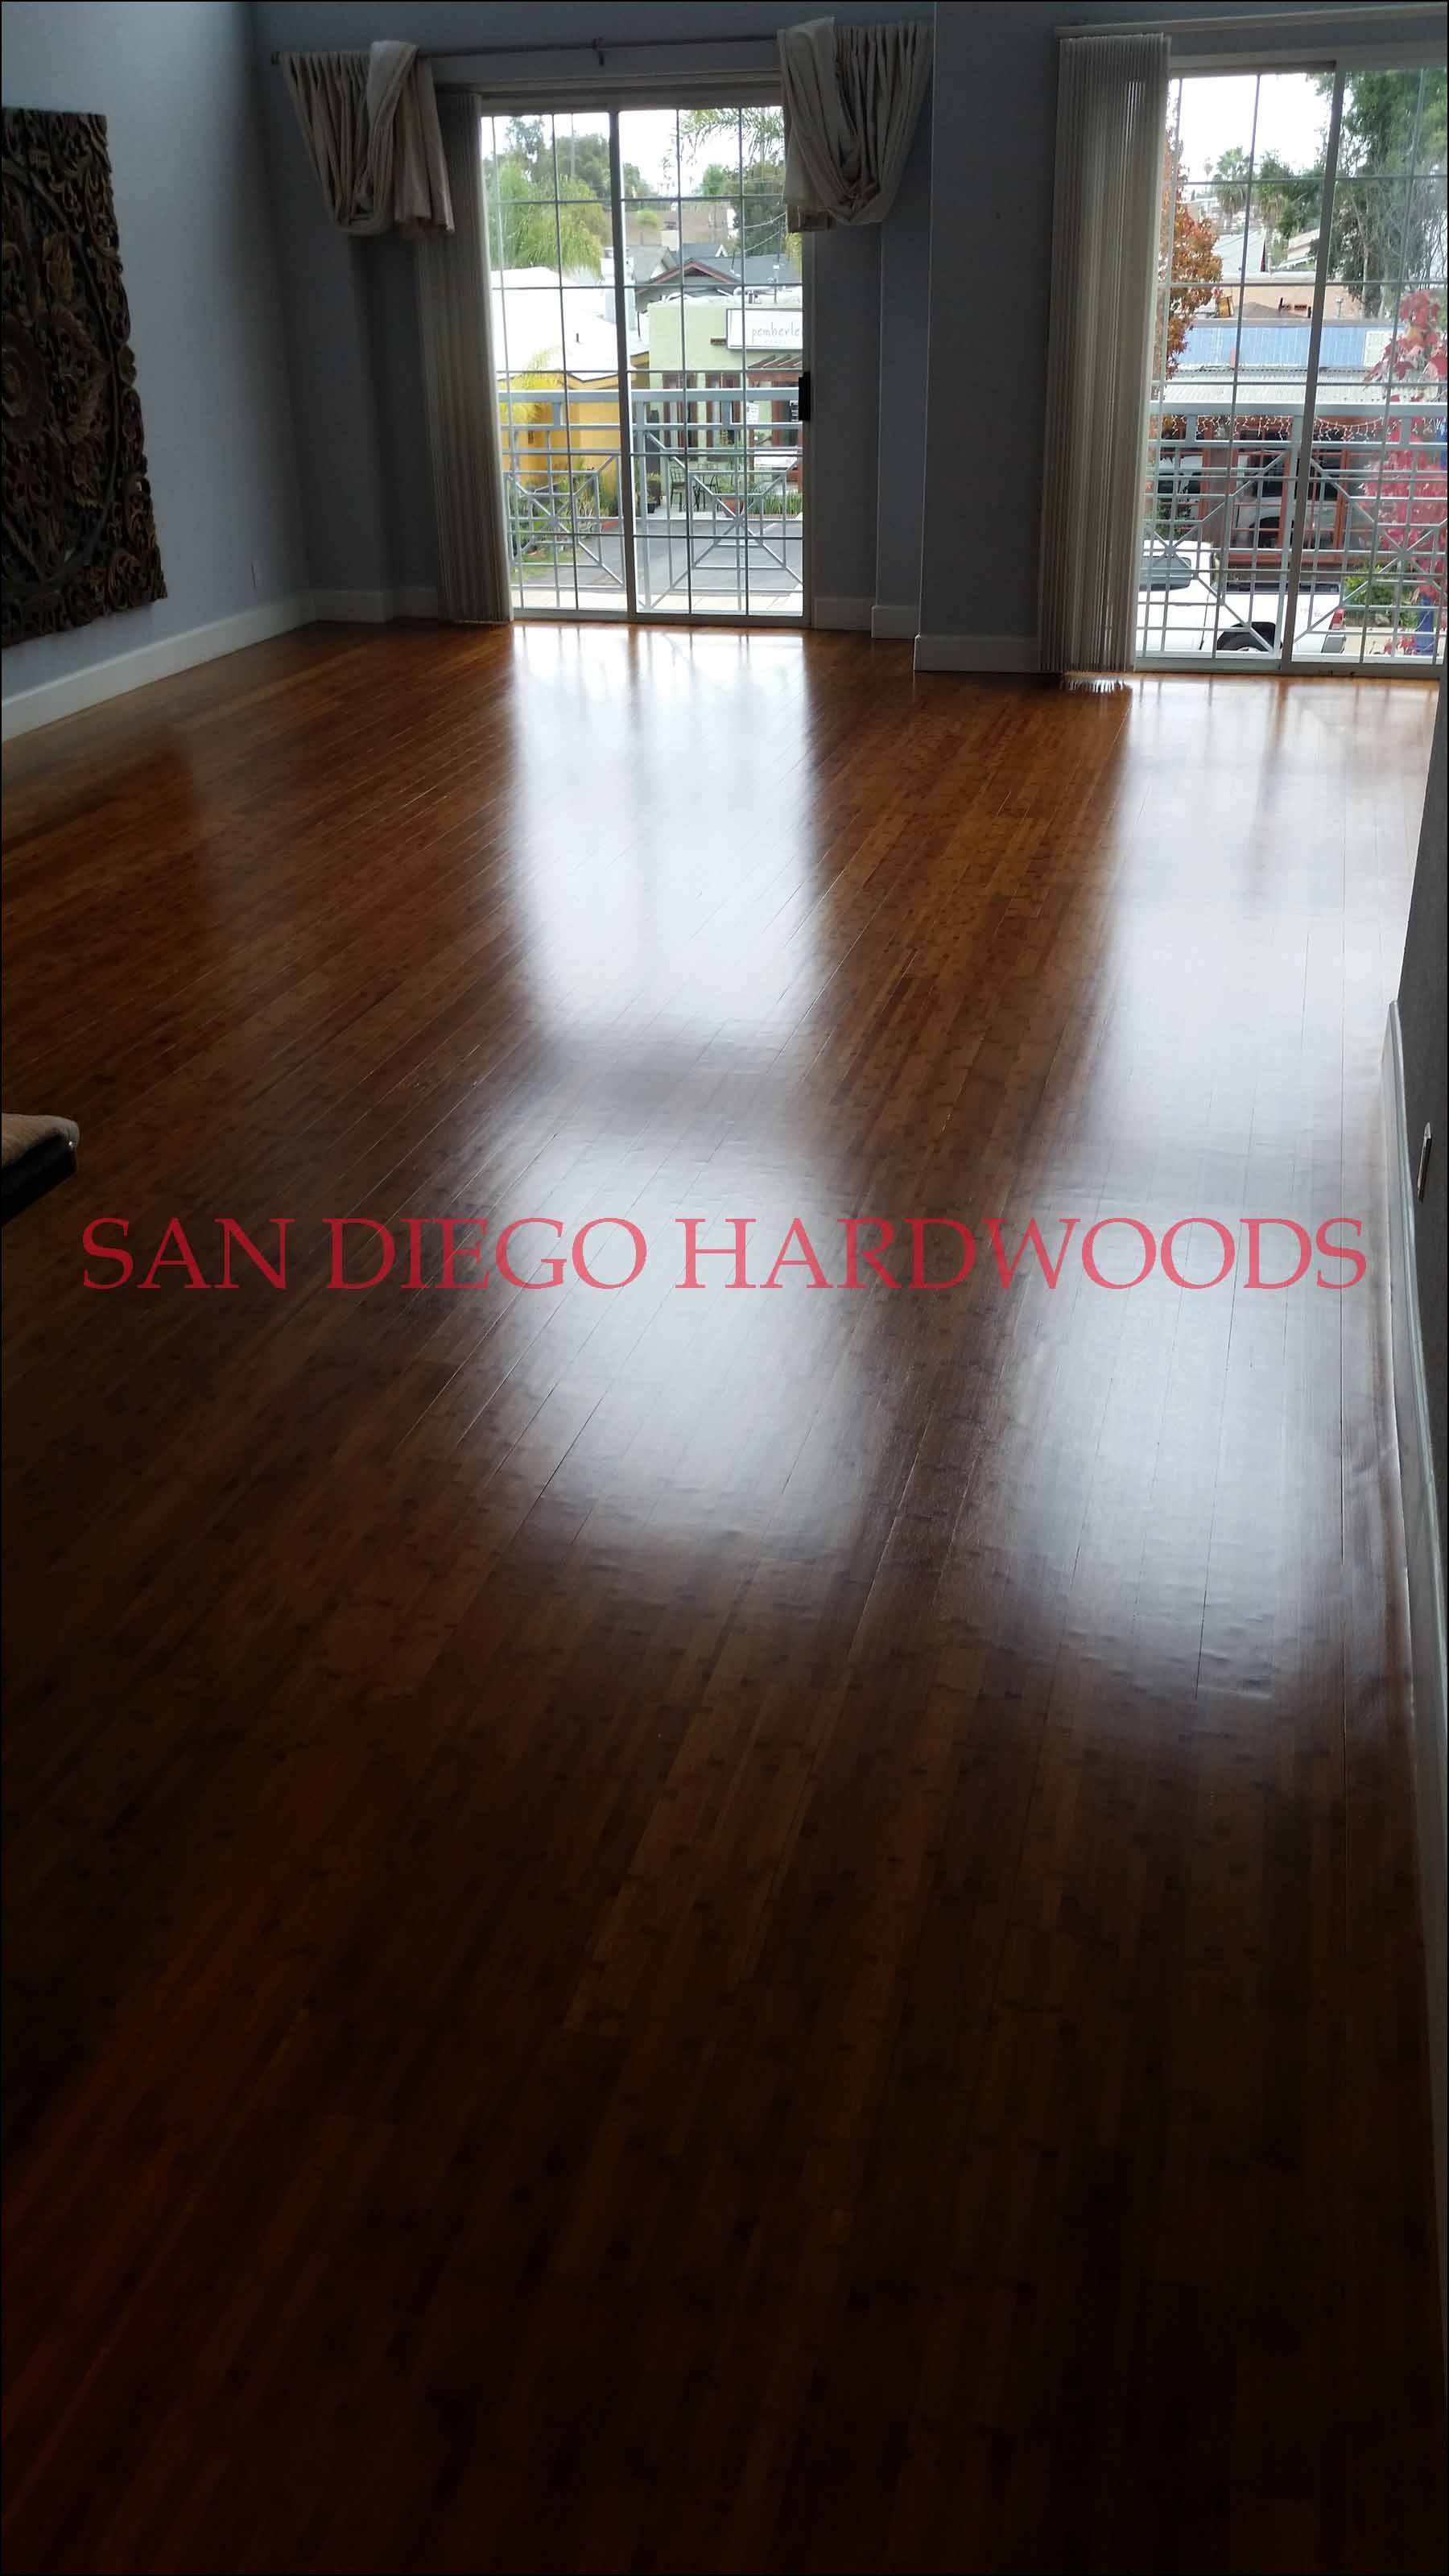 Hardwood Floor New York Of What is Flooring Ideas Inside What is the Highest Quality Laminate Flooring Images San Diego Hardwood Floor Restoration 858 699 0072